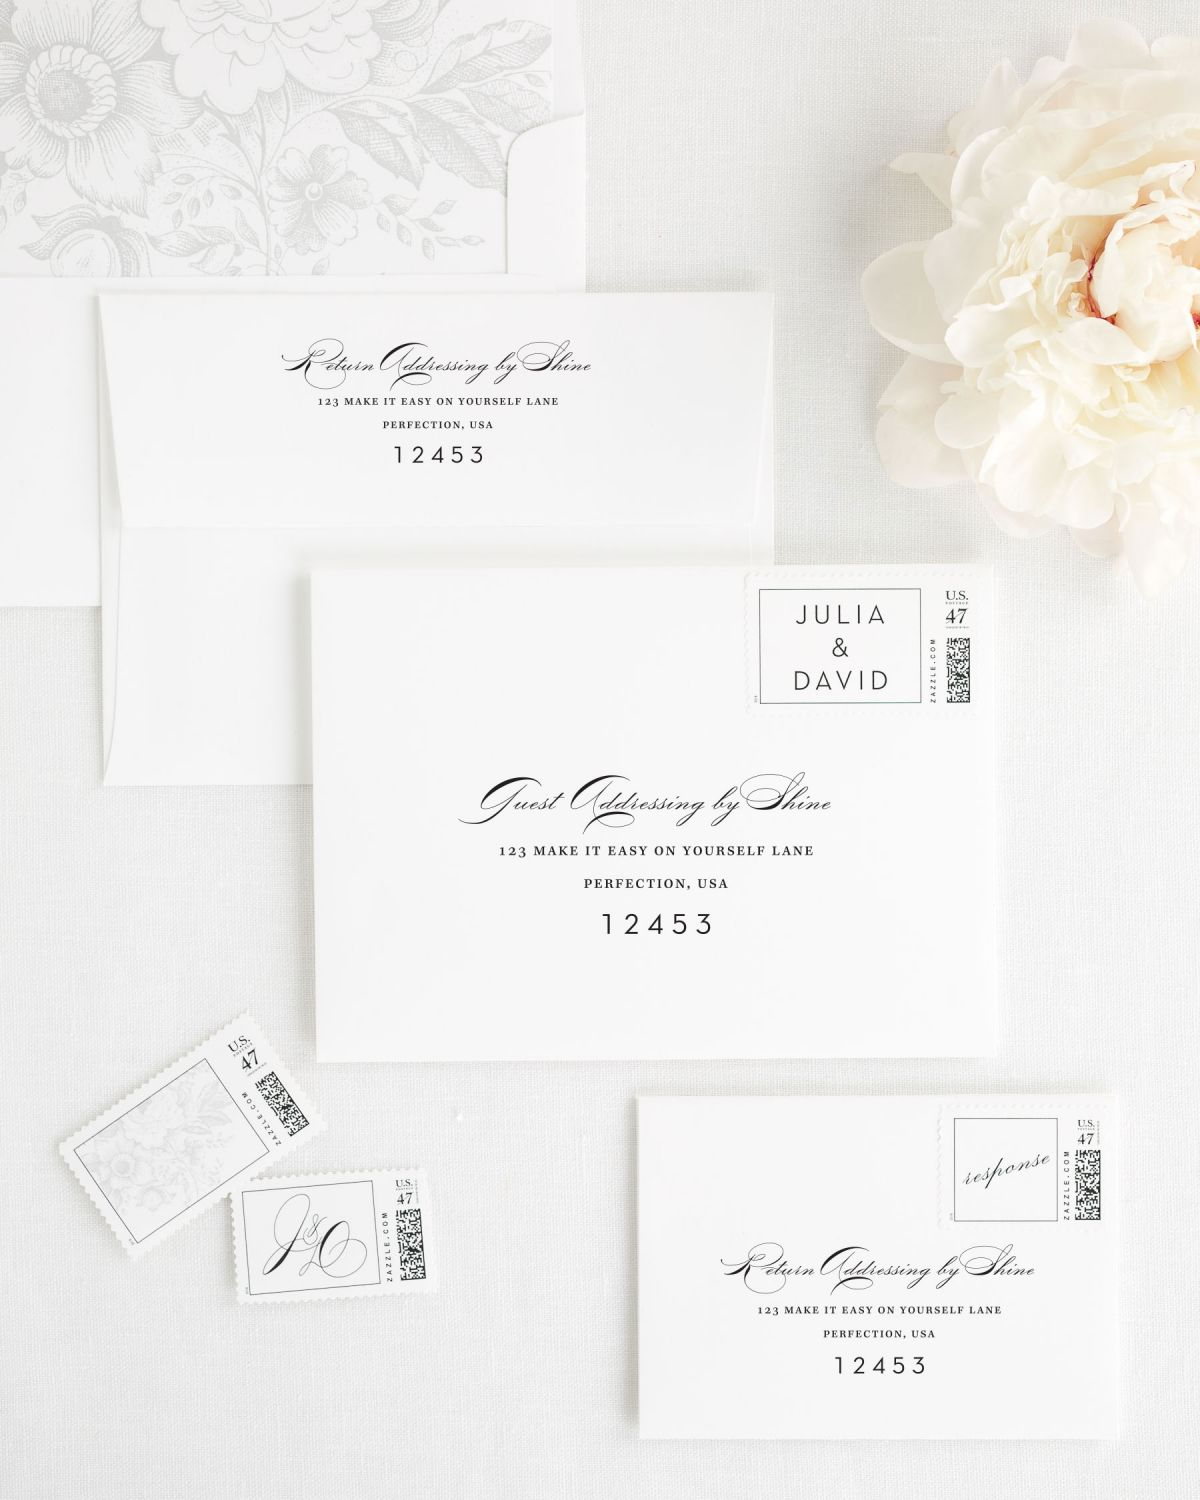 wedding envelopes with guest addressing and custom stamps in silver